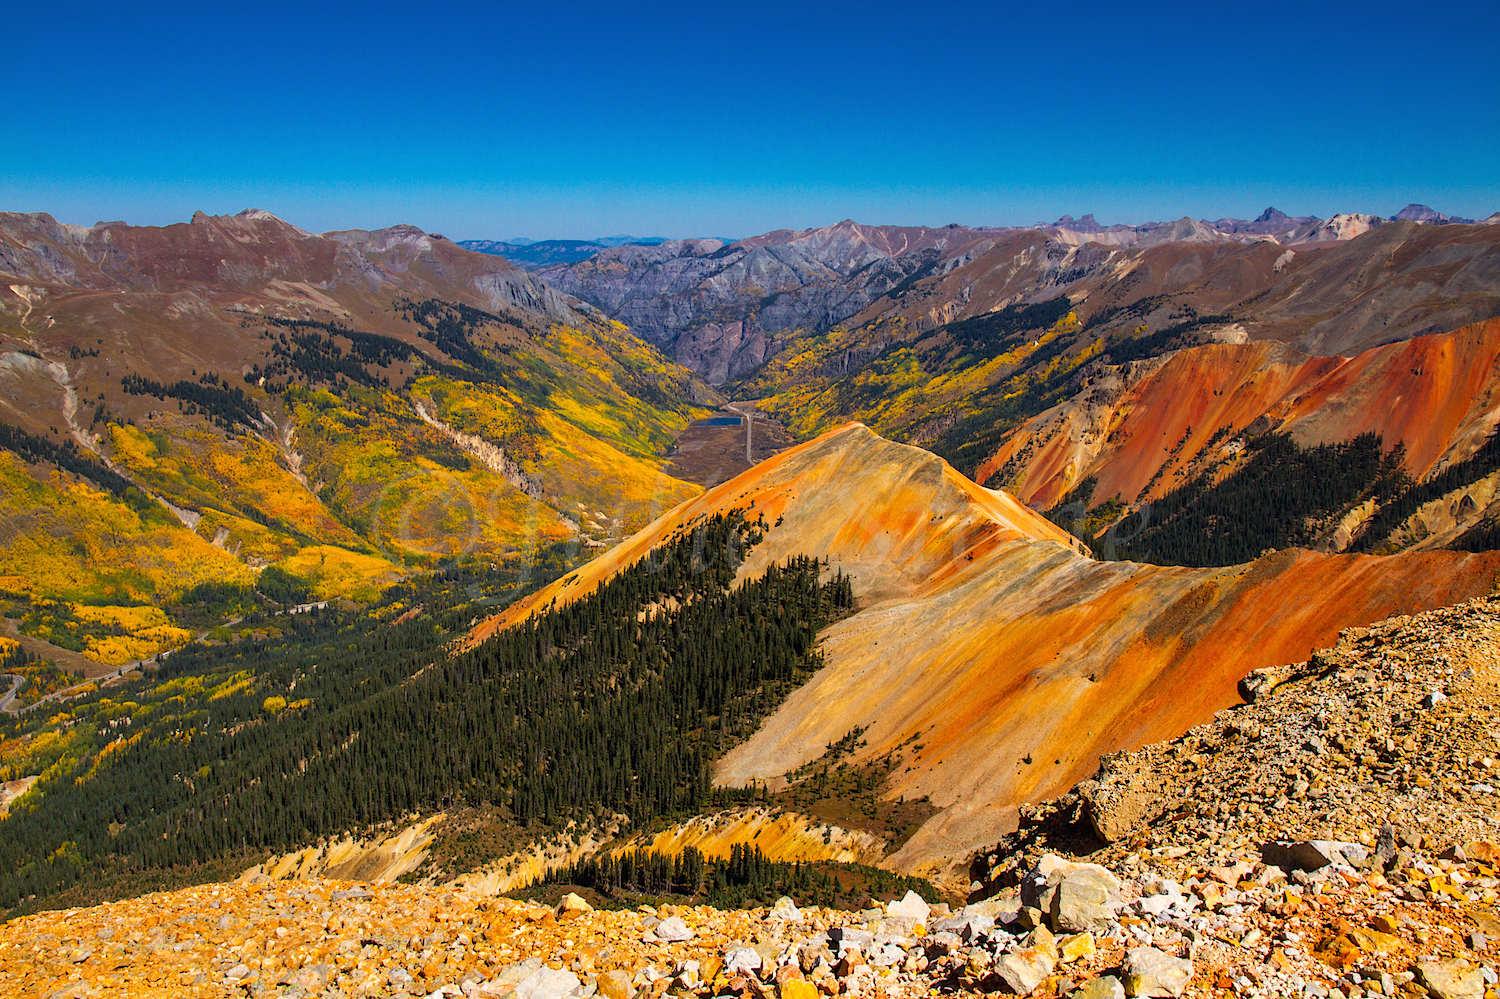 Red Mountain #3, Image #1202